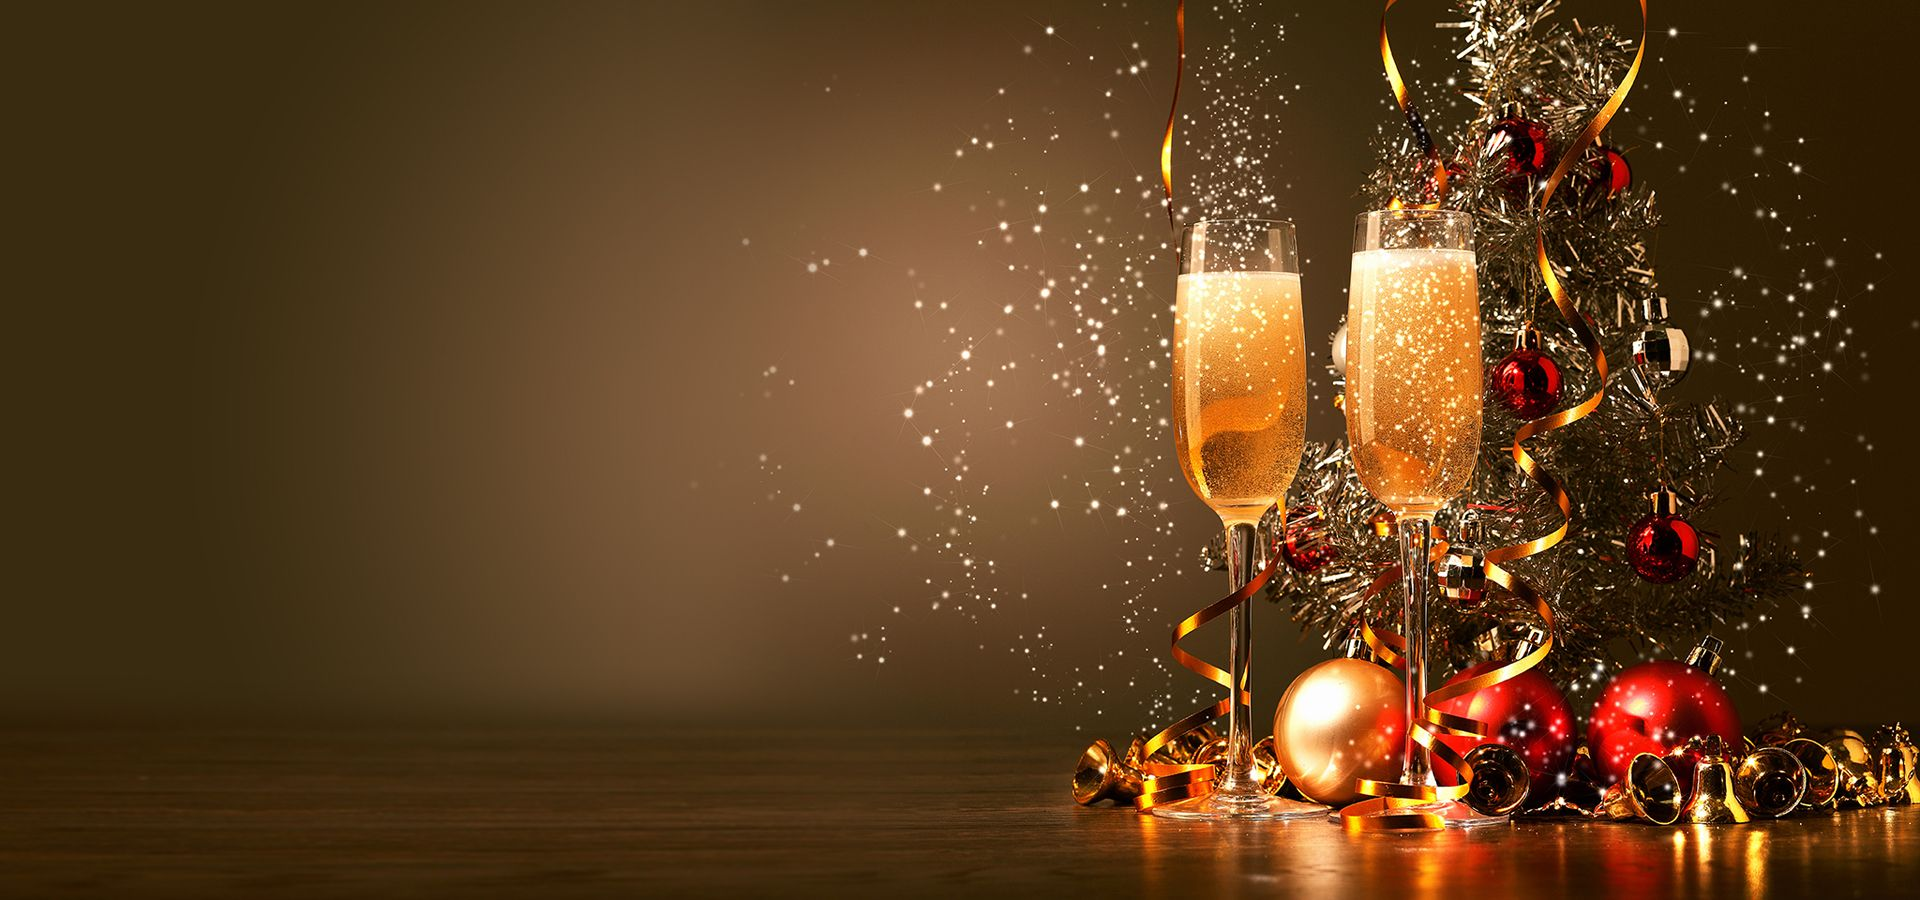 Colorful Festivals Champagne Background In 2020 Christmas Background Images Free Christmas Backgrounds Christmas Background